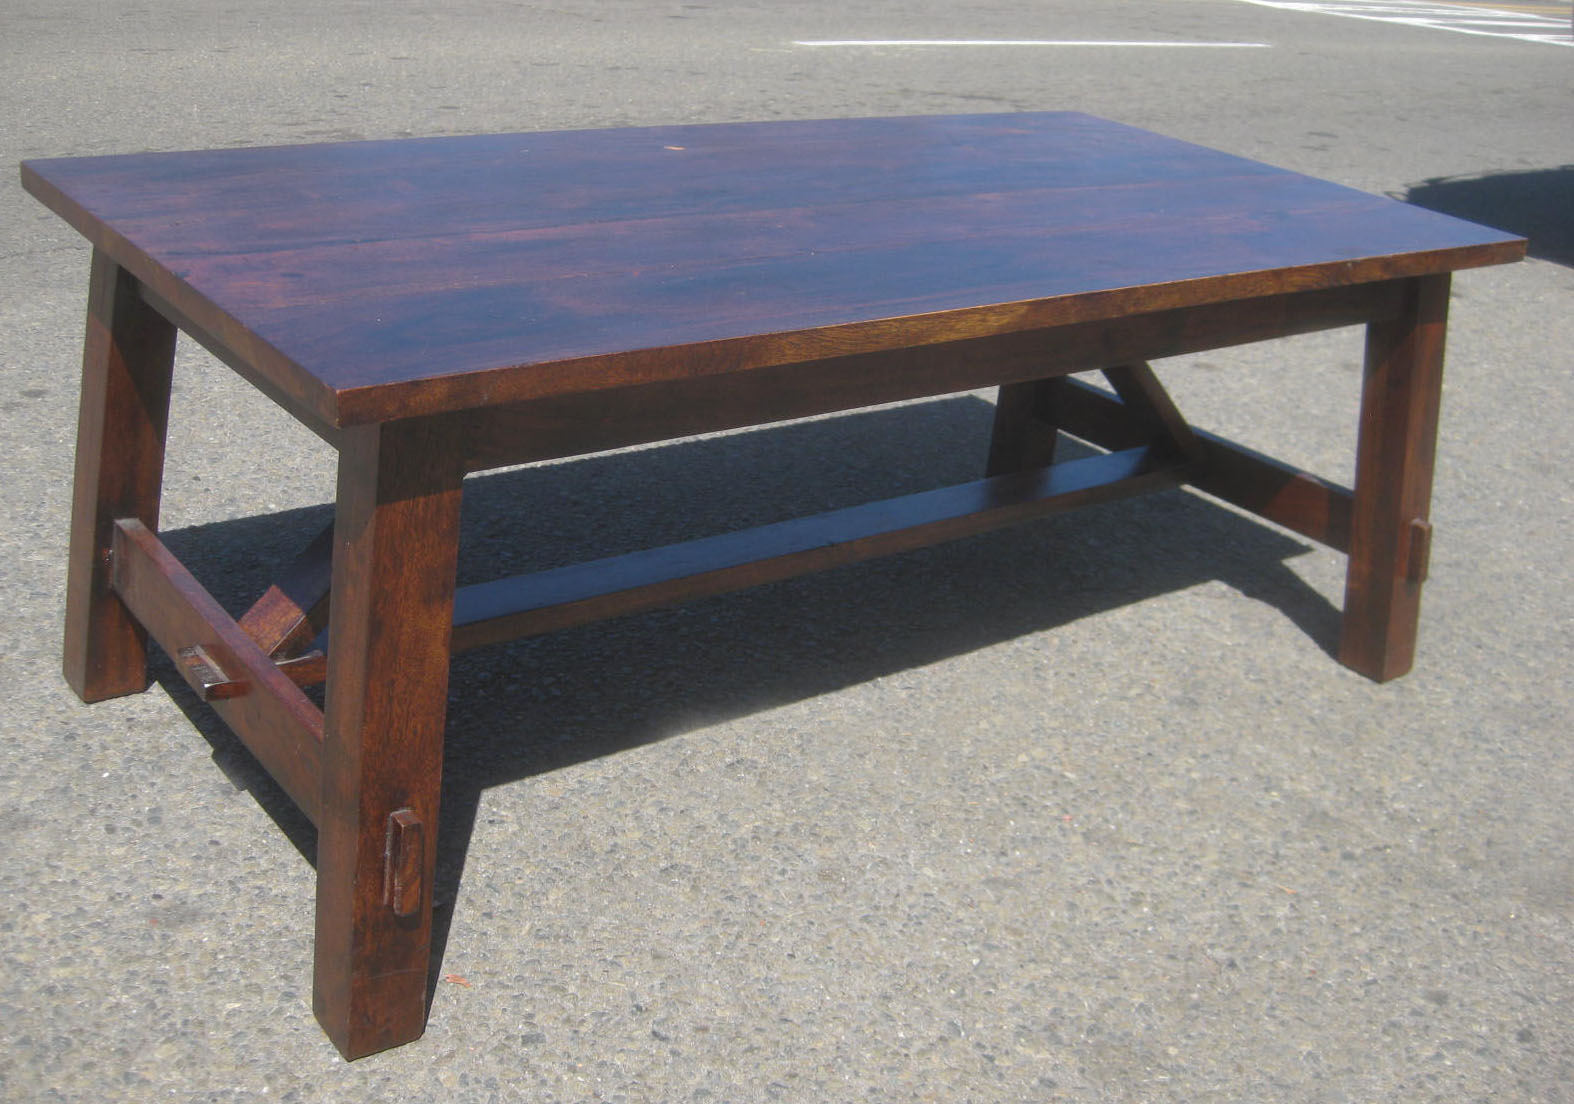 Uhuru furniture collectibles sold solid teak coffee table 70 Solid teak coffee table